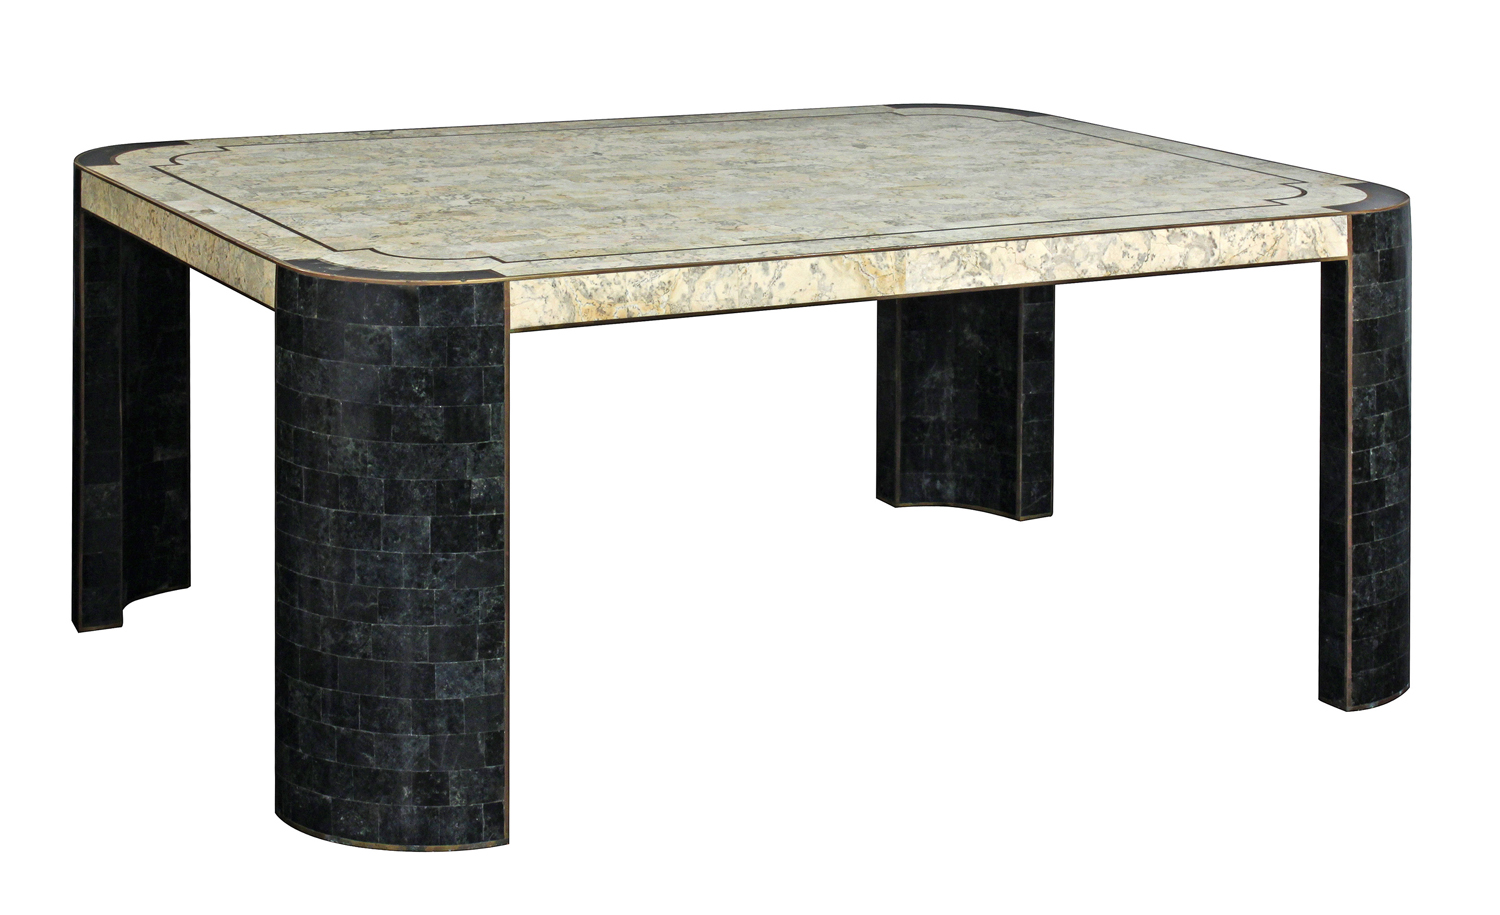 Maitland Smith 55 lt+drk tesstone coffeetable218 hires main 2.jpg